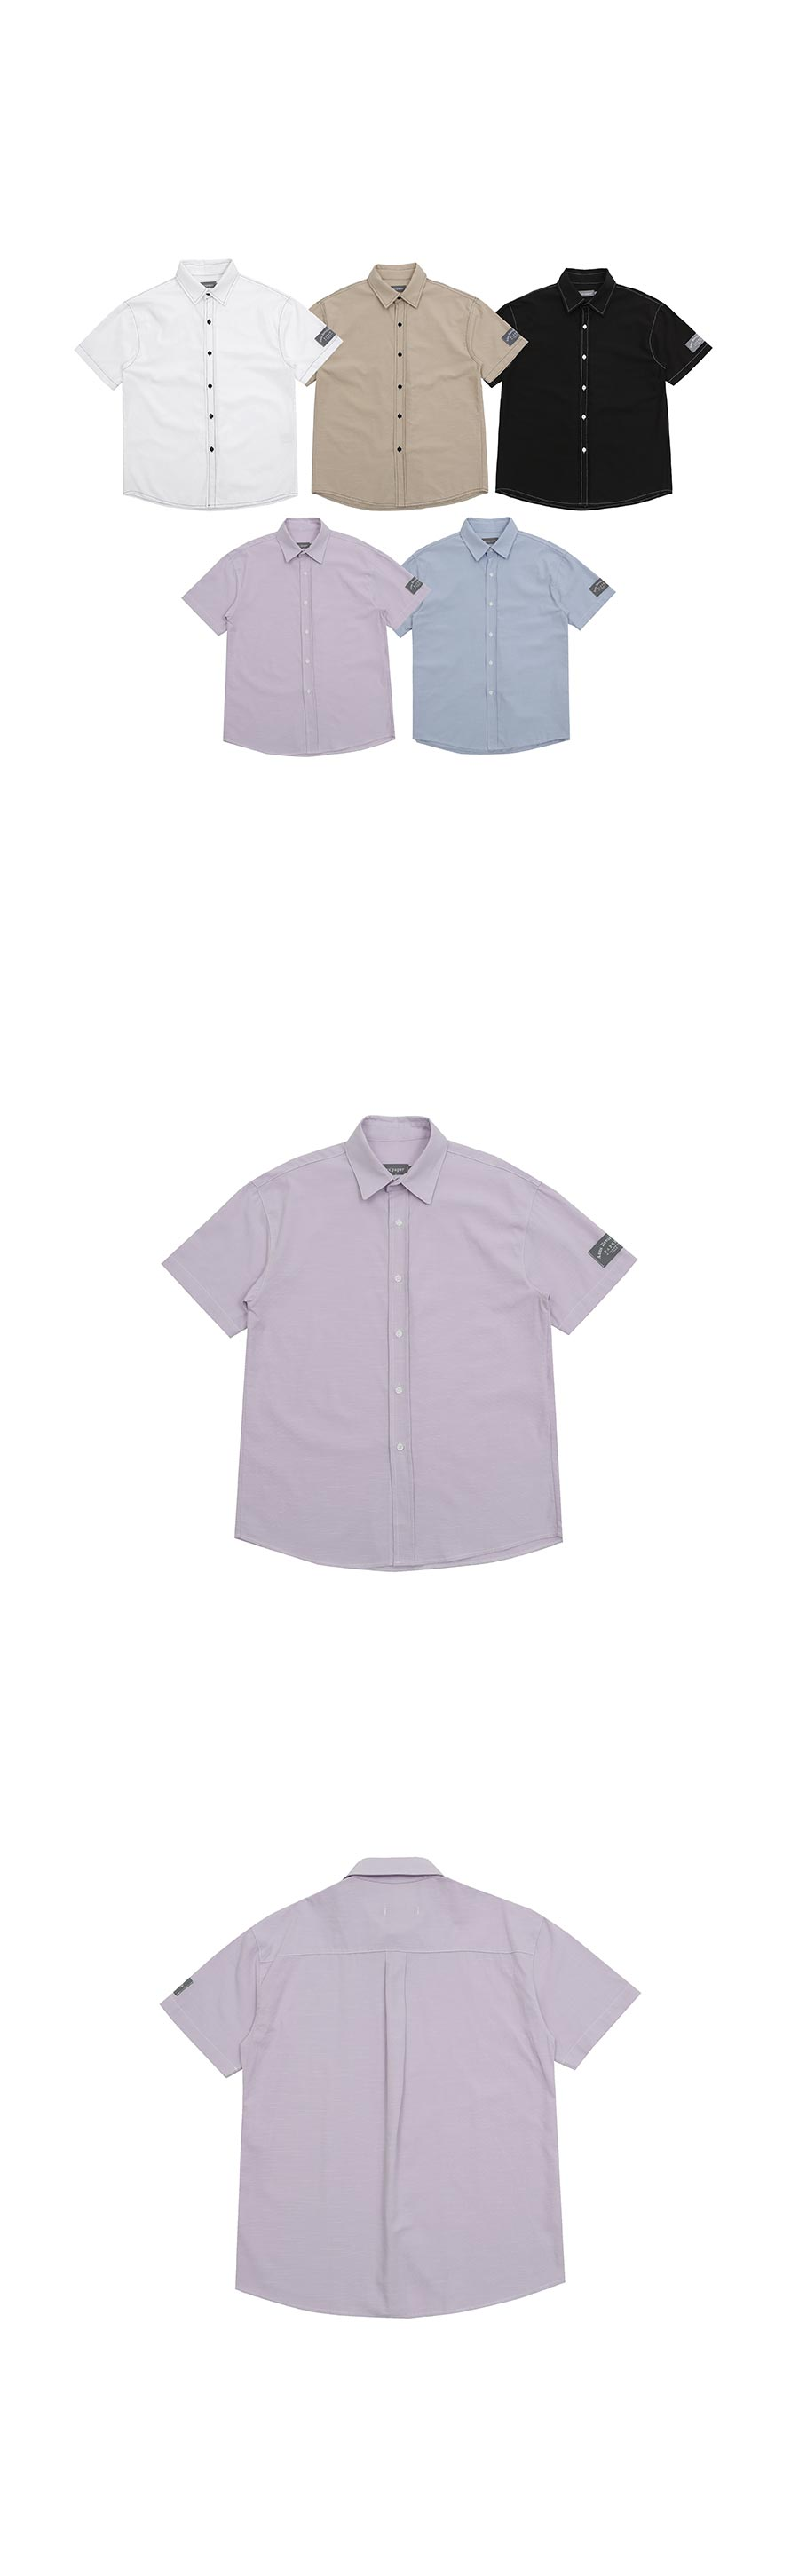 UNISEX-STITCHE-POINT-SHIRT_PURPLE01.jpg